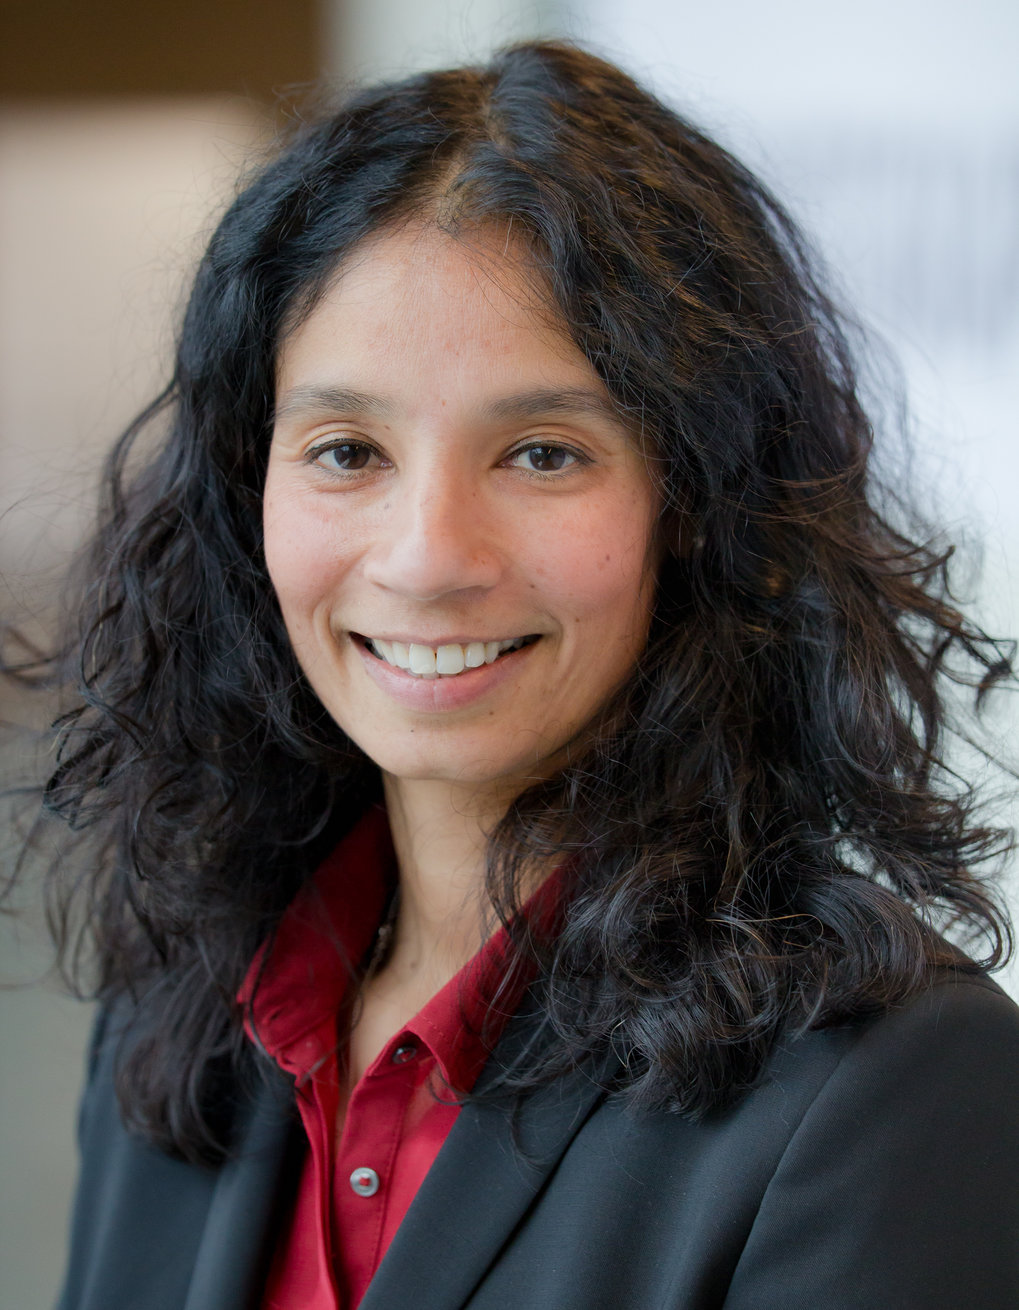 Dr. Asifa Akhtar, Department of Chromatin Regulation at the Max Planck Institute of Immunobiology and Epigenetics, Freiburg